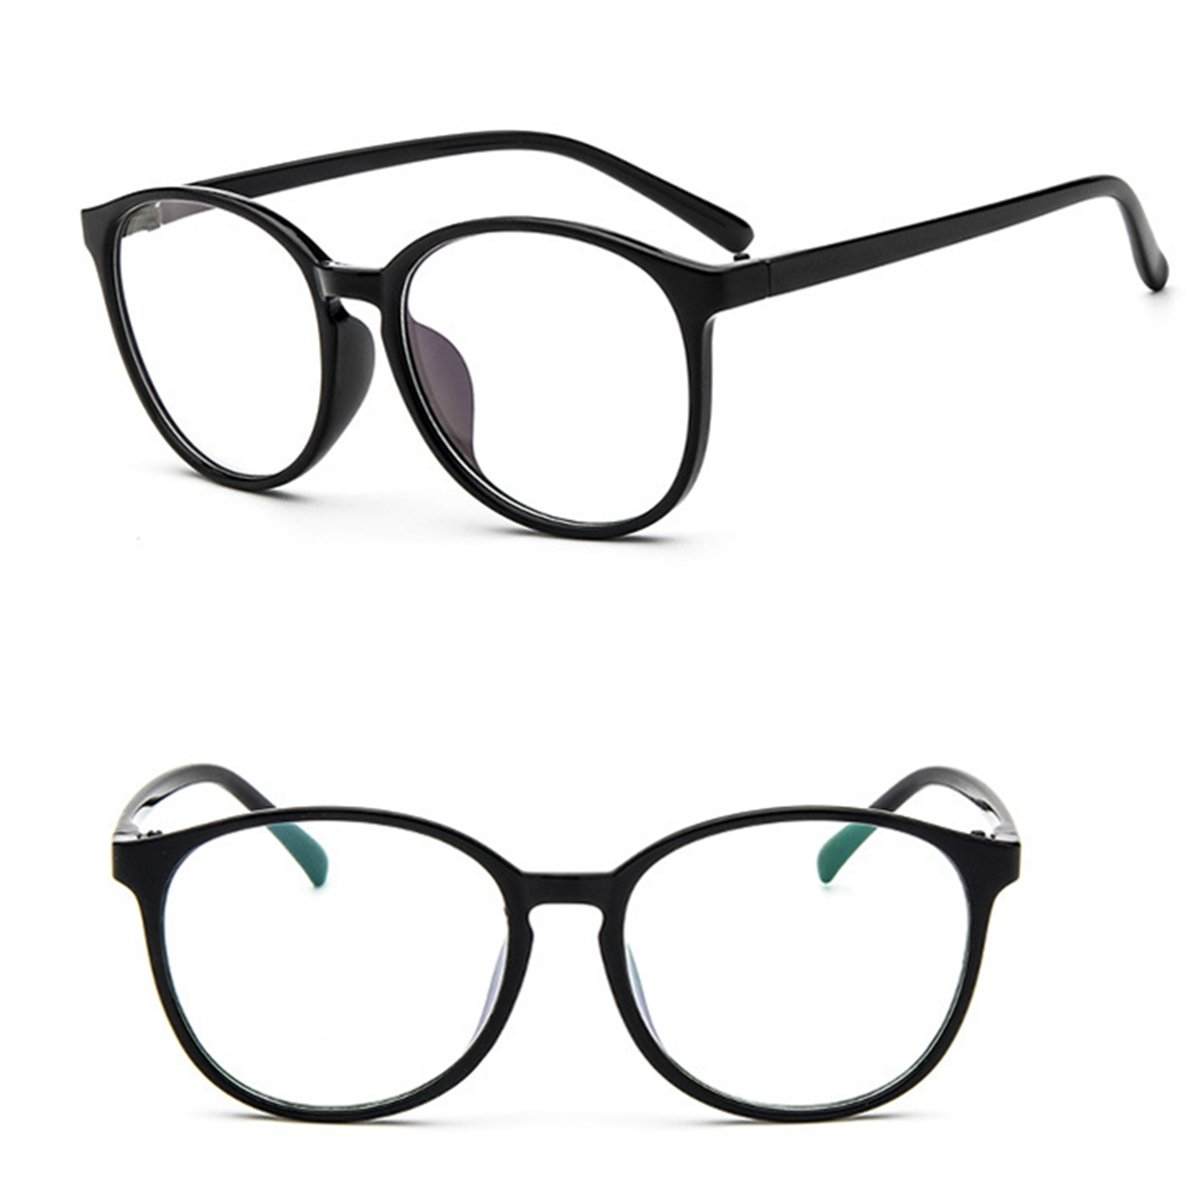 Men Women Eyeglasses Clear Plain Lens Large Oval Plastic Frame Glasses